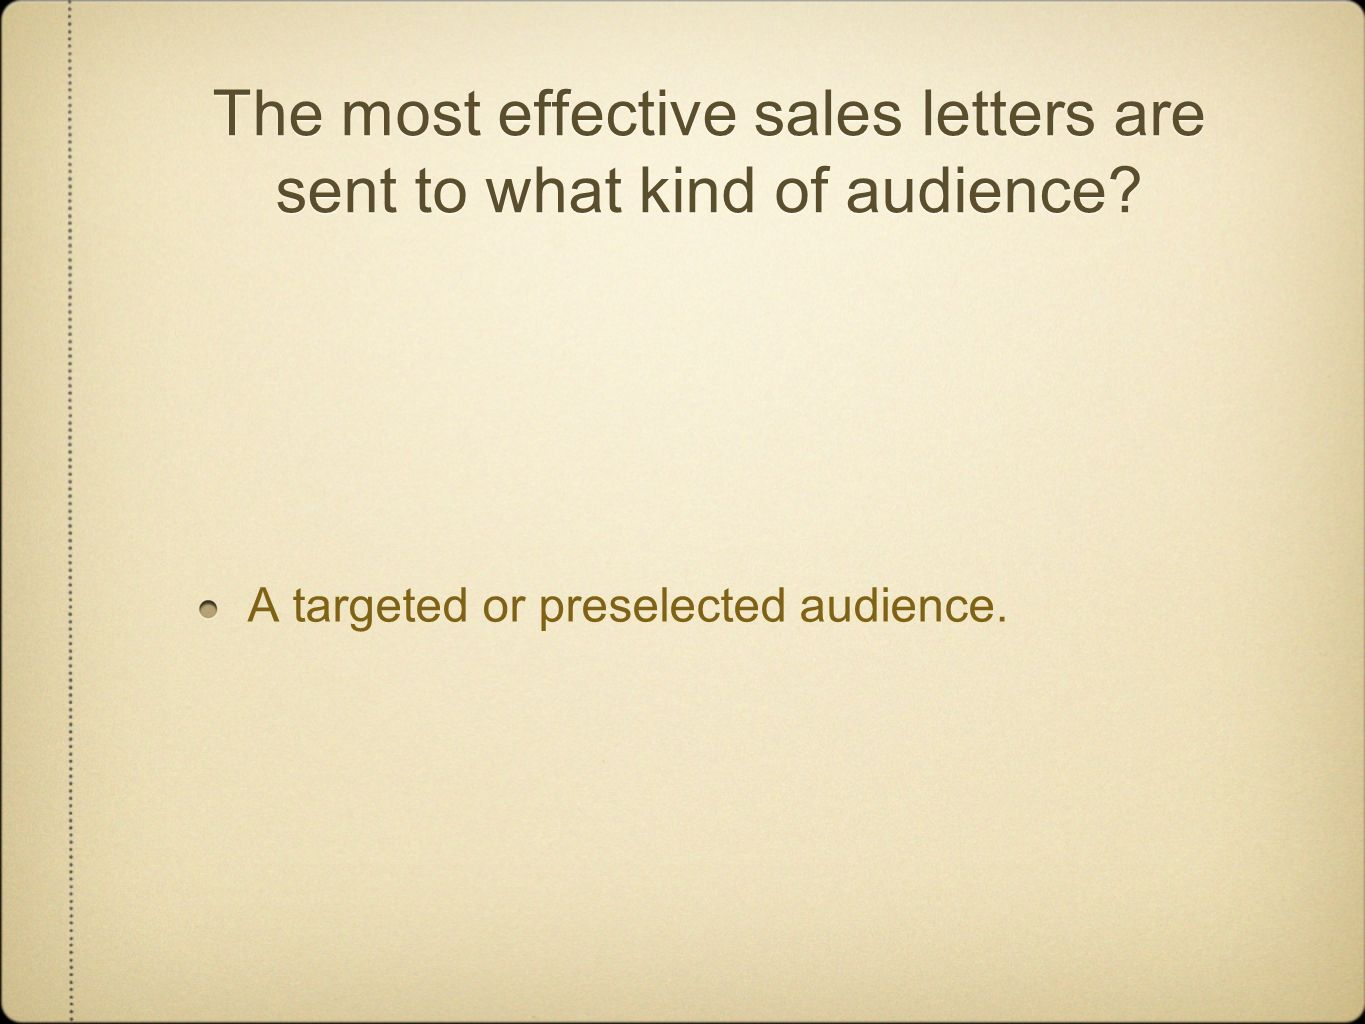 The most effective sales letters are sent to what kind of audience? A targeted or preselected audience.